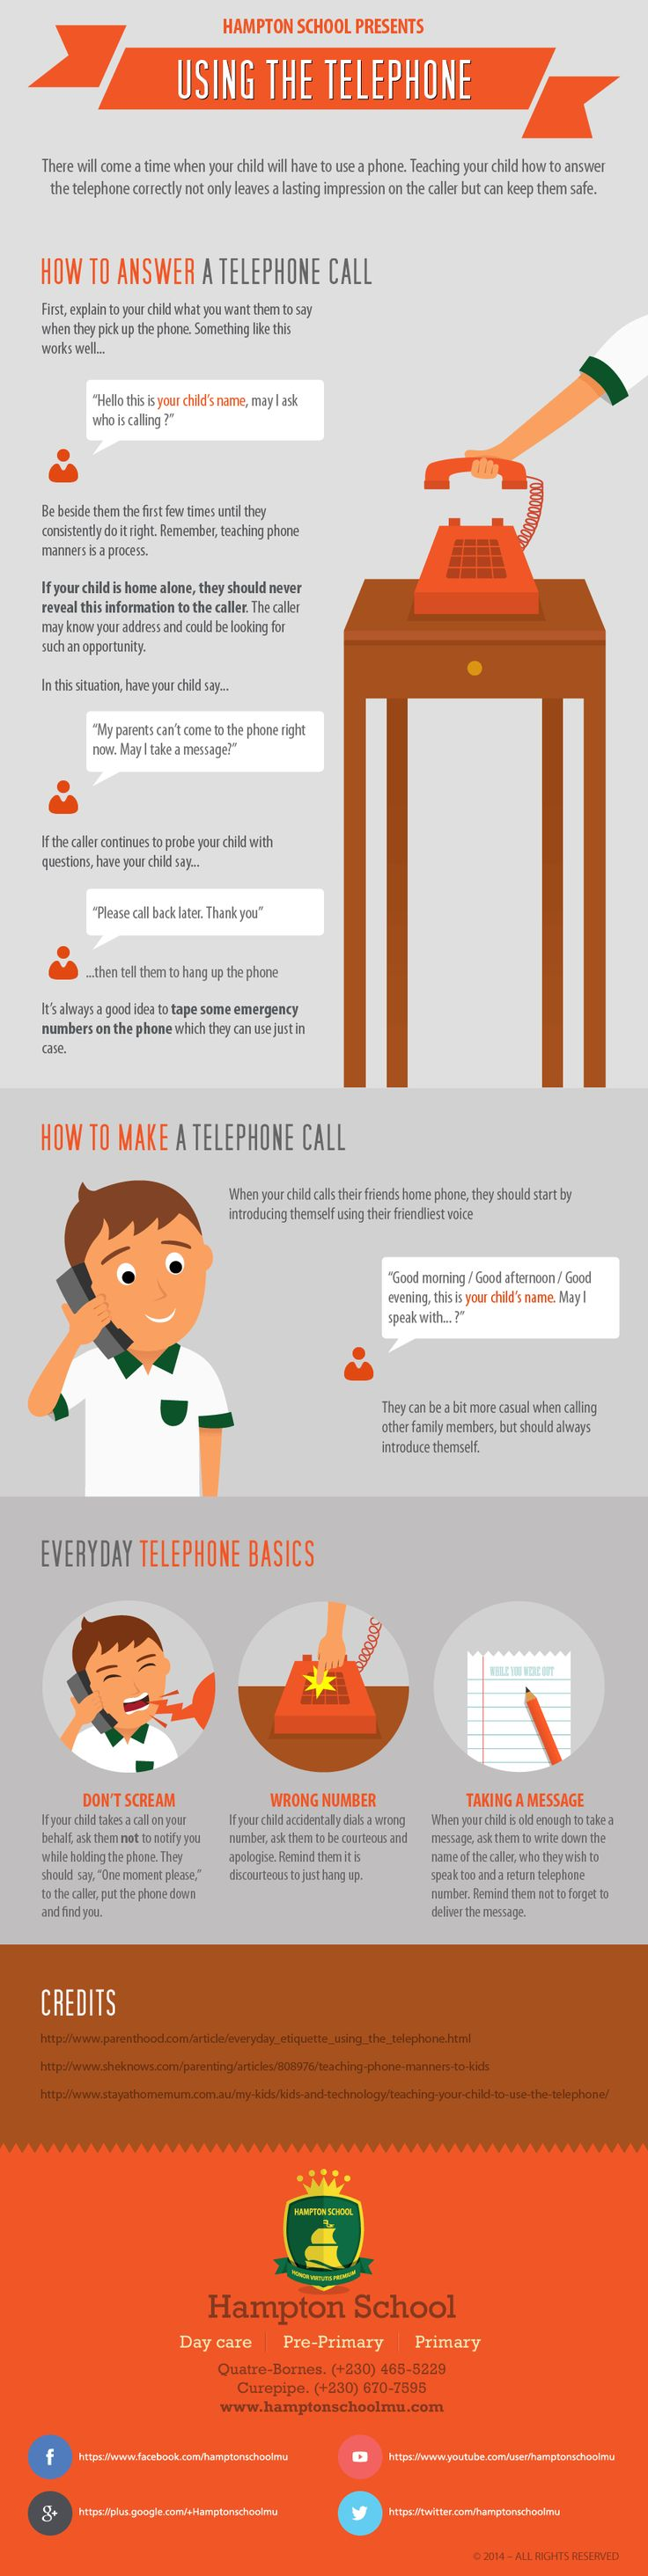 Telephone Safety and Etiquette Infographic Health